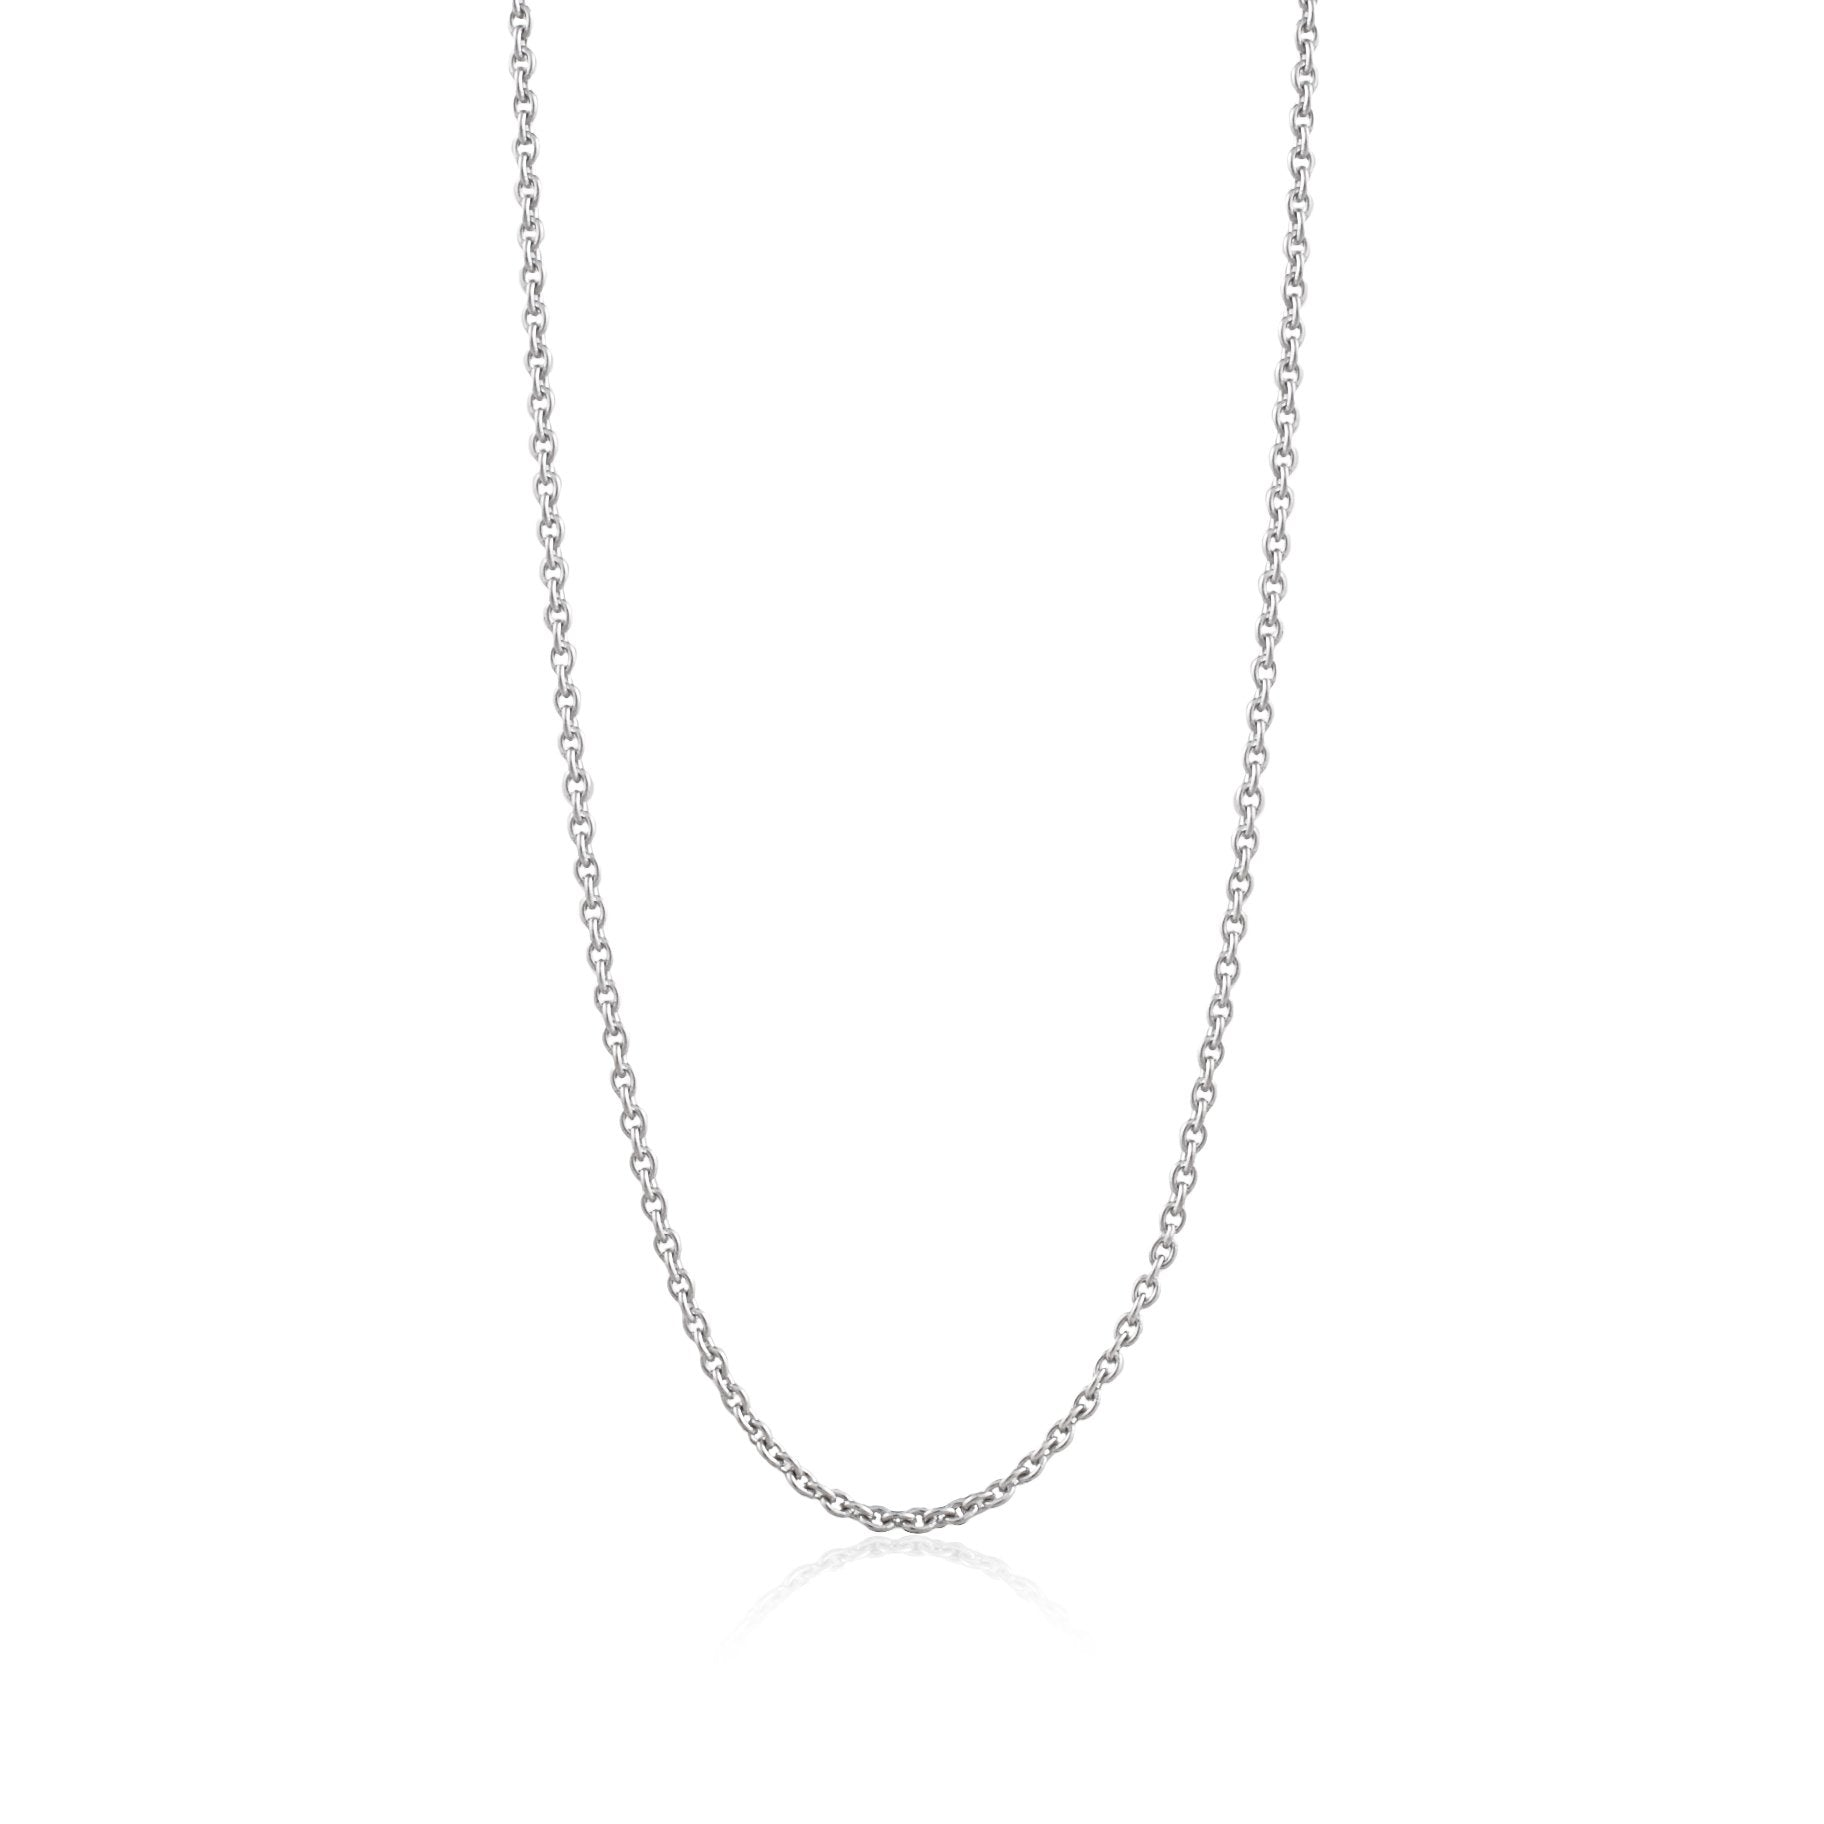 Luna & Rose Como Cable Chain - Recycled Sterling Silver